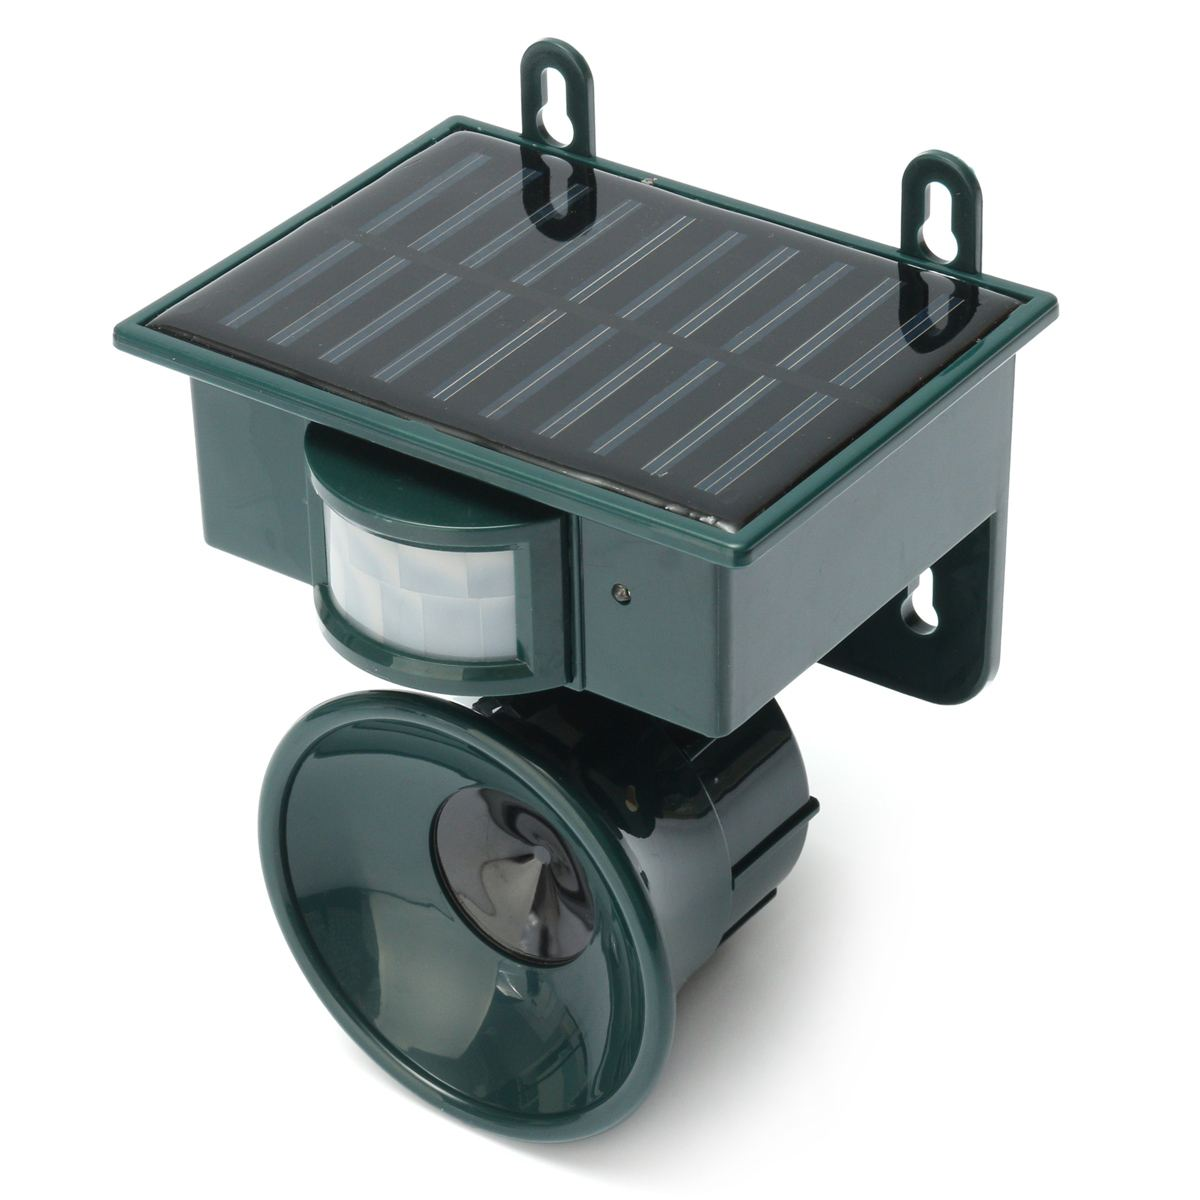 Bird-Repeller Chaser Garden-Supplies Motion-Sensor Scarer Animal Solar-Powered Ultrasonic title=